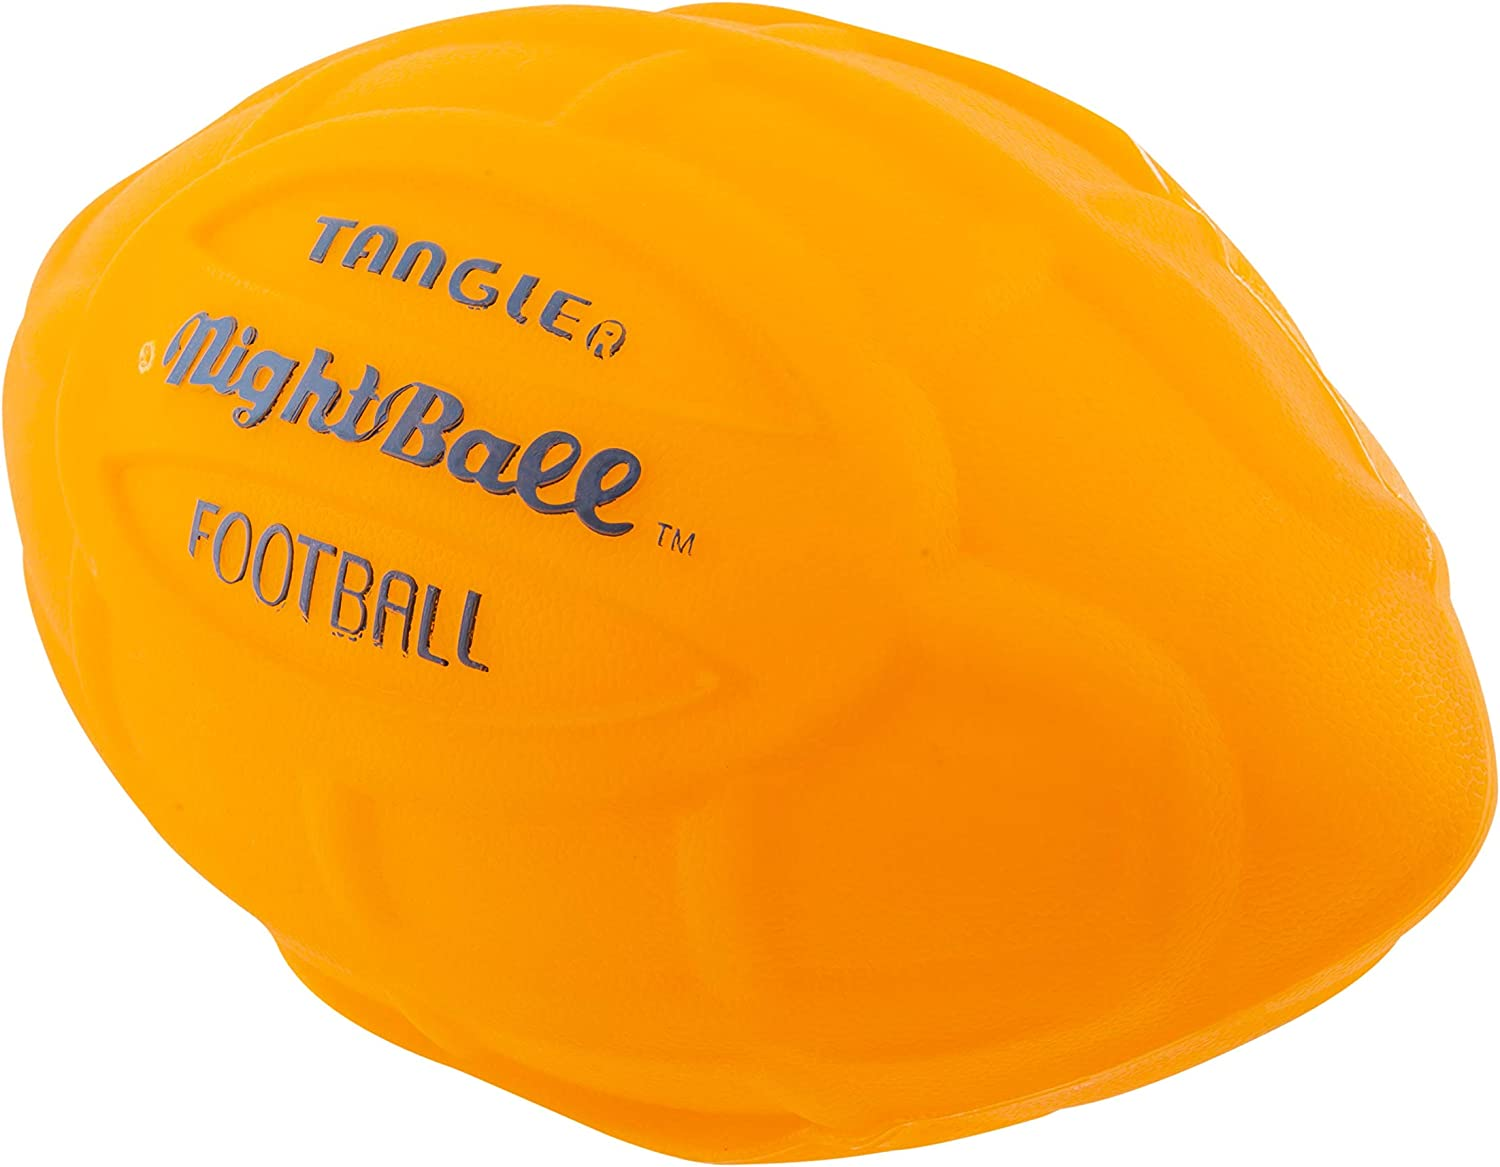 Tangle Nightball Light Up Football Yellow